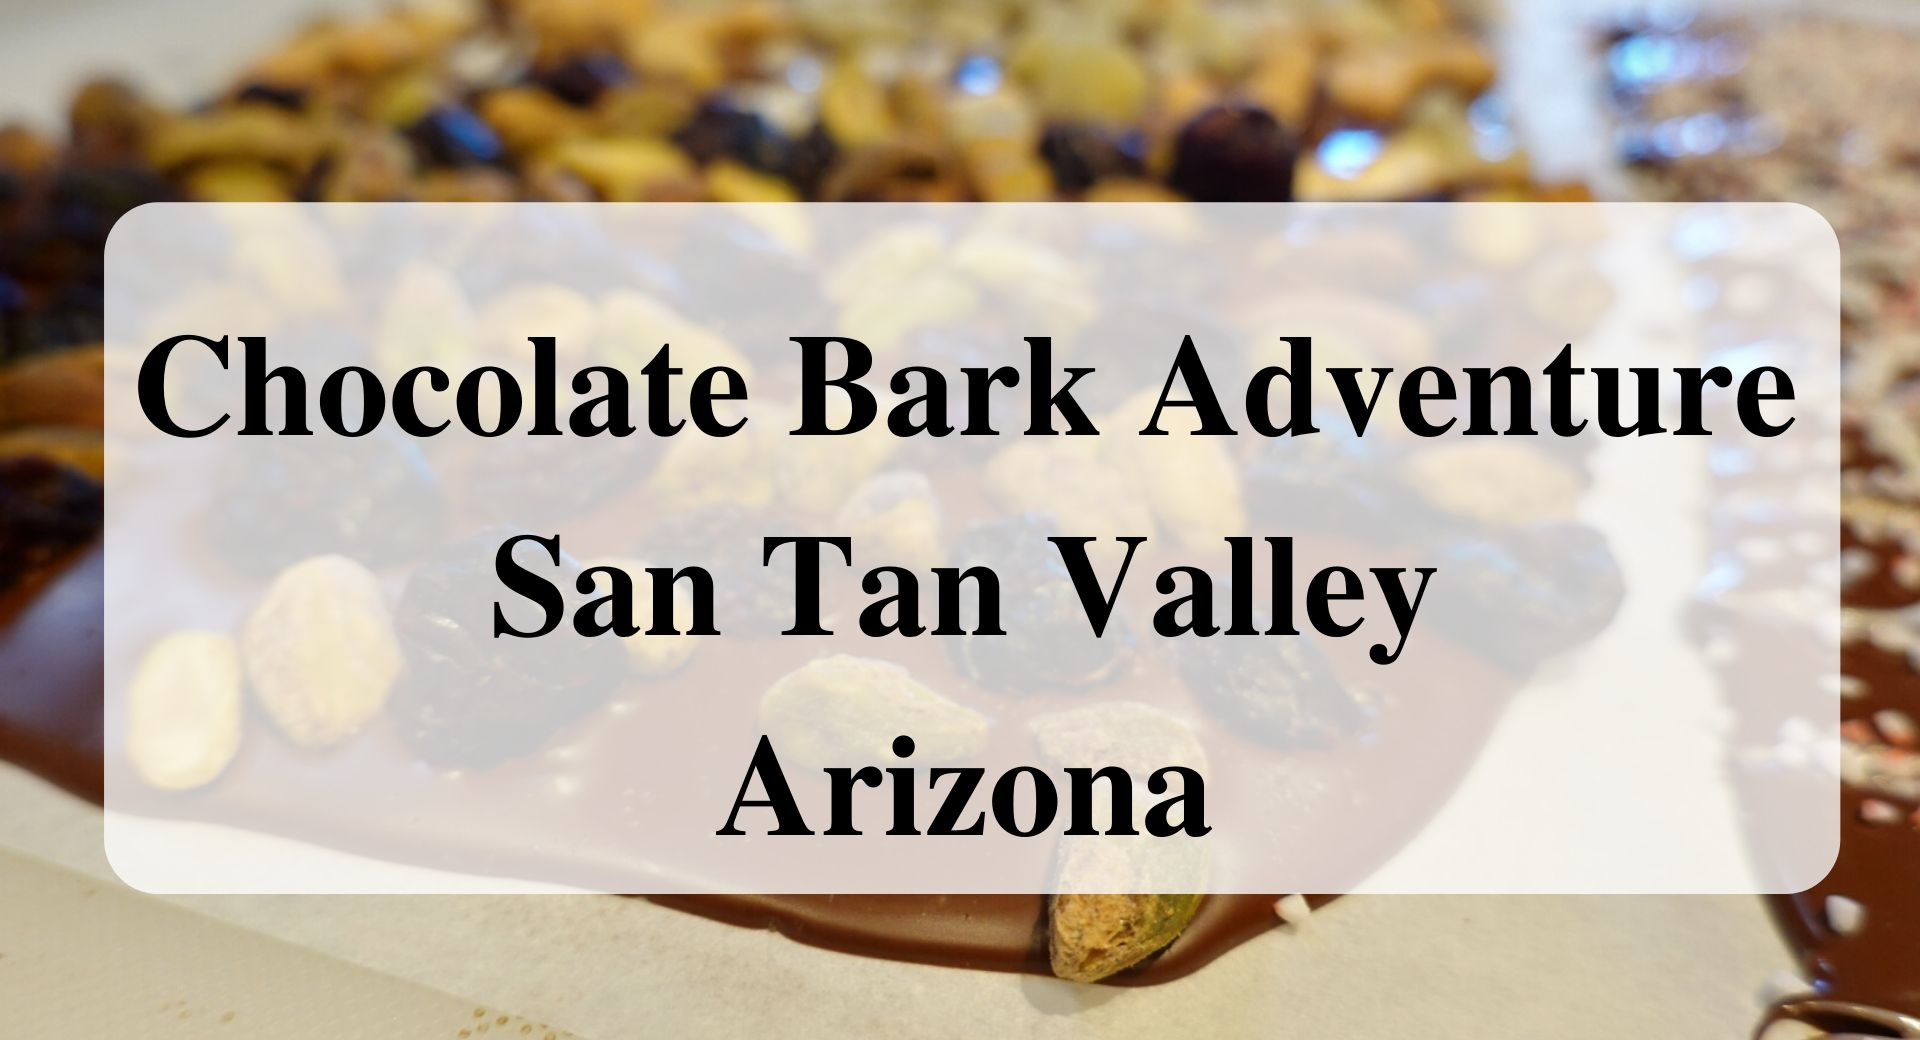 Chocolate Bark Adventure San Tan Valley Arizona Forever sabbatical